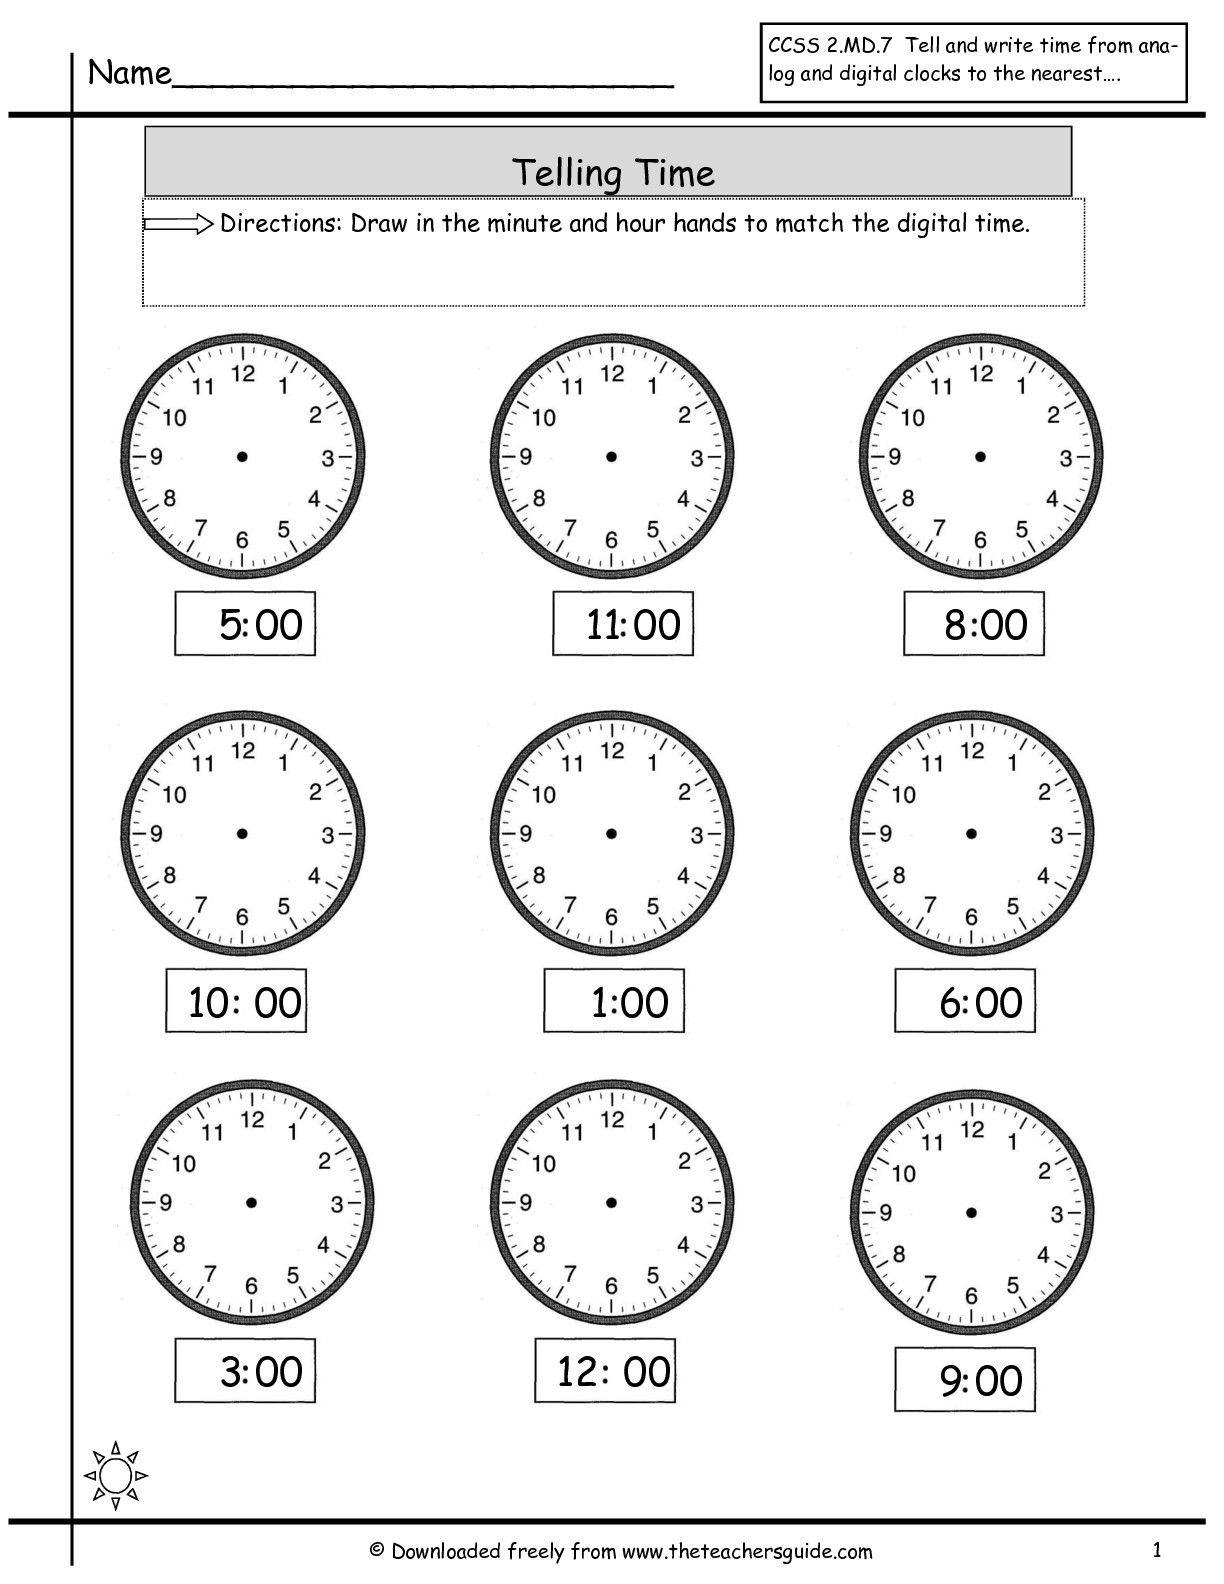 worksheet Clock Times Worksheet collection worksheets on time pictures worksheet for kids images images